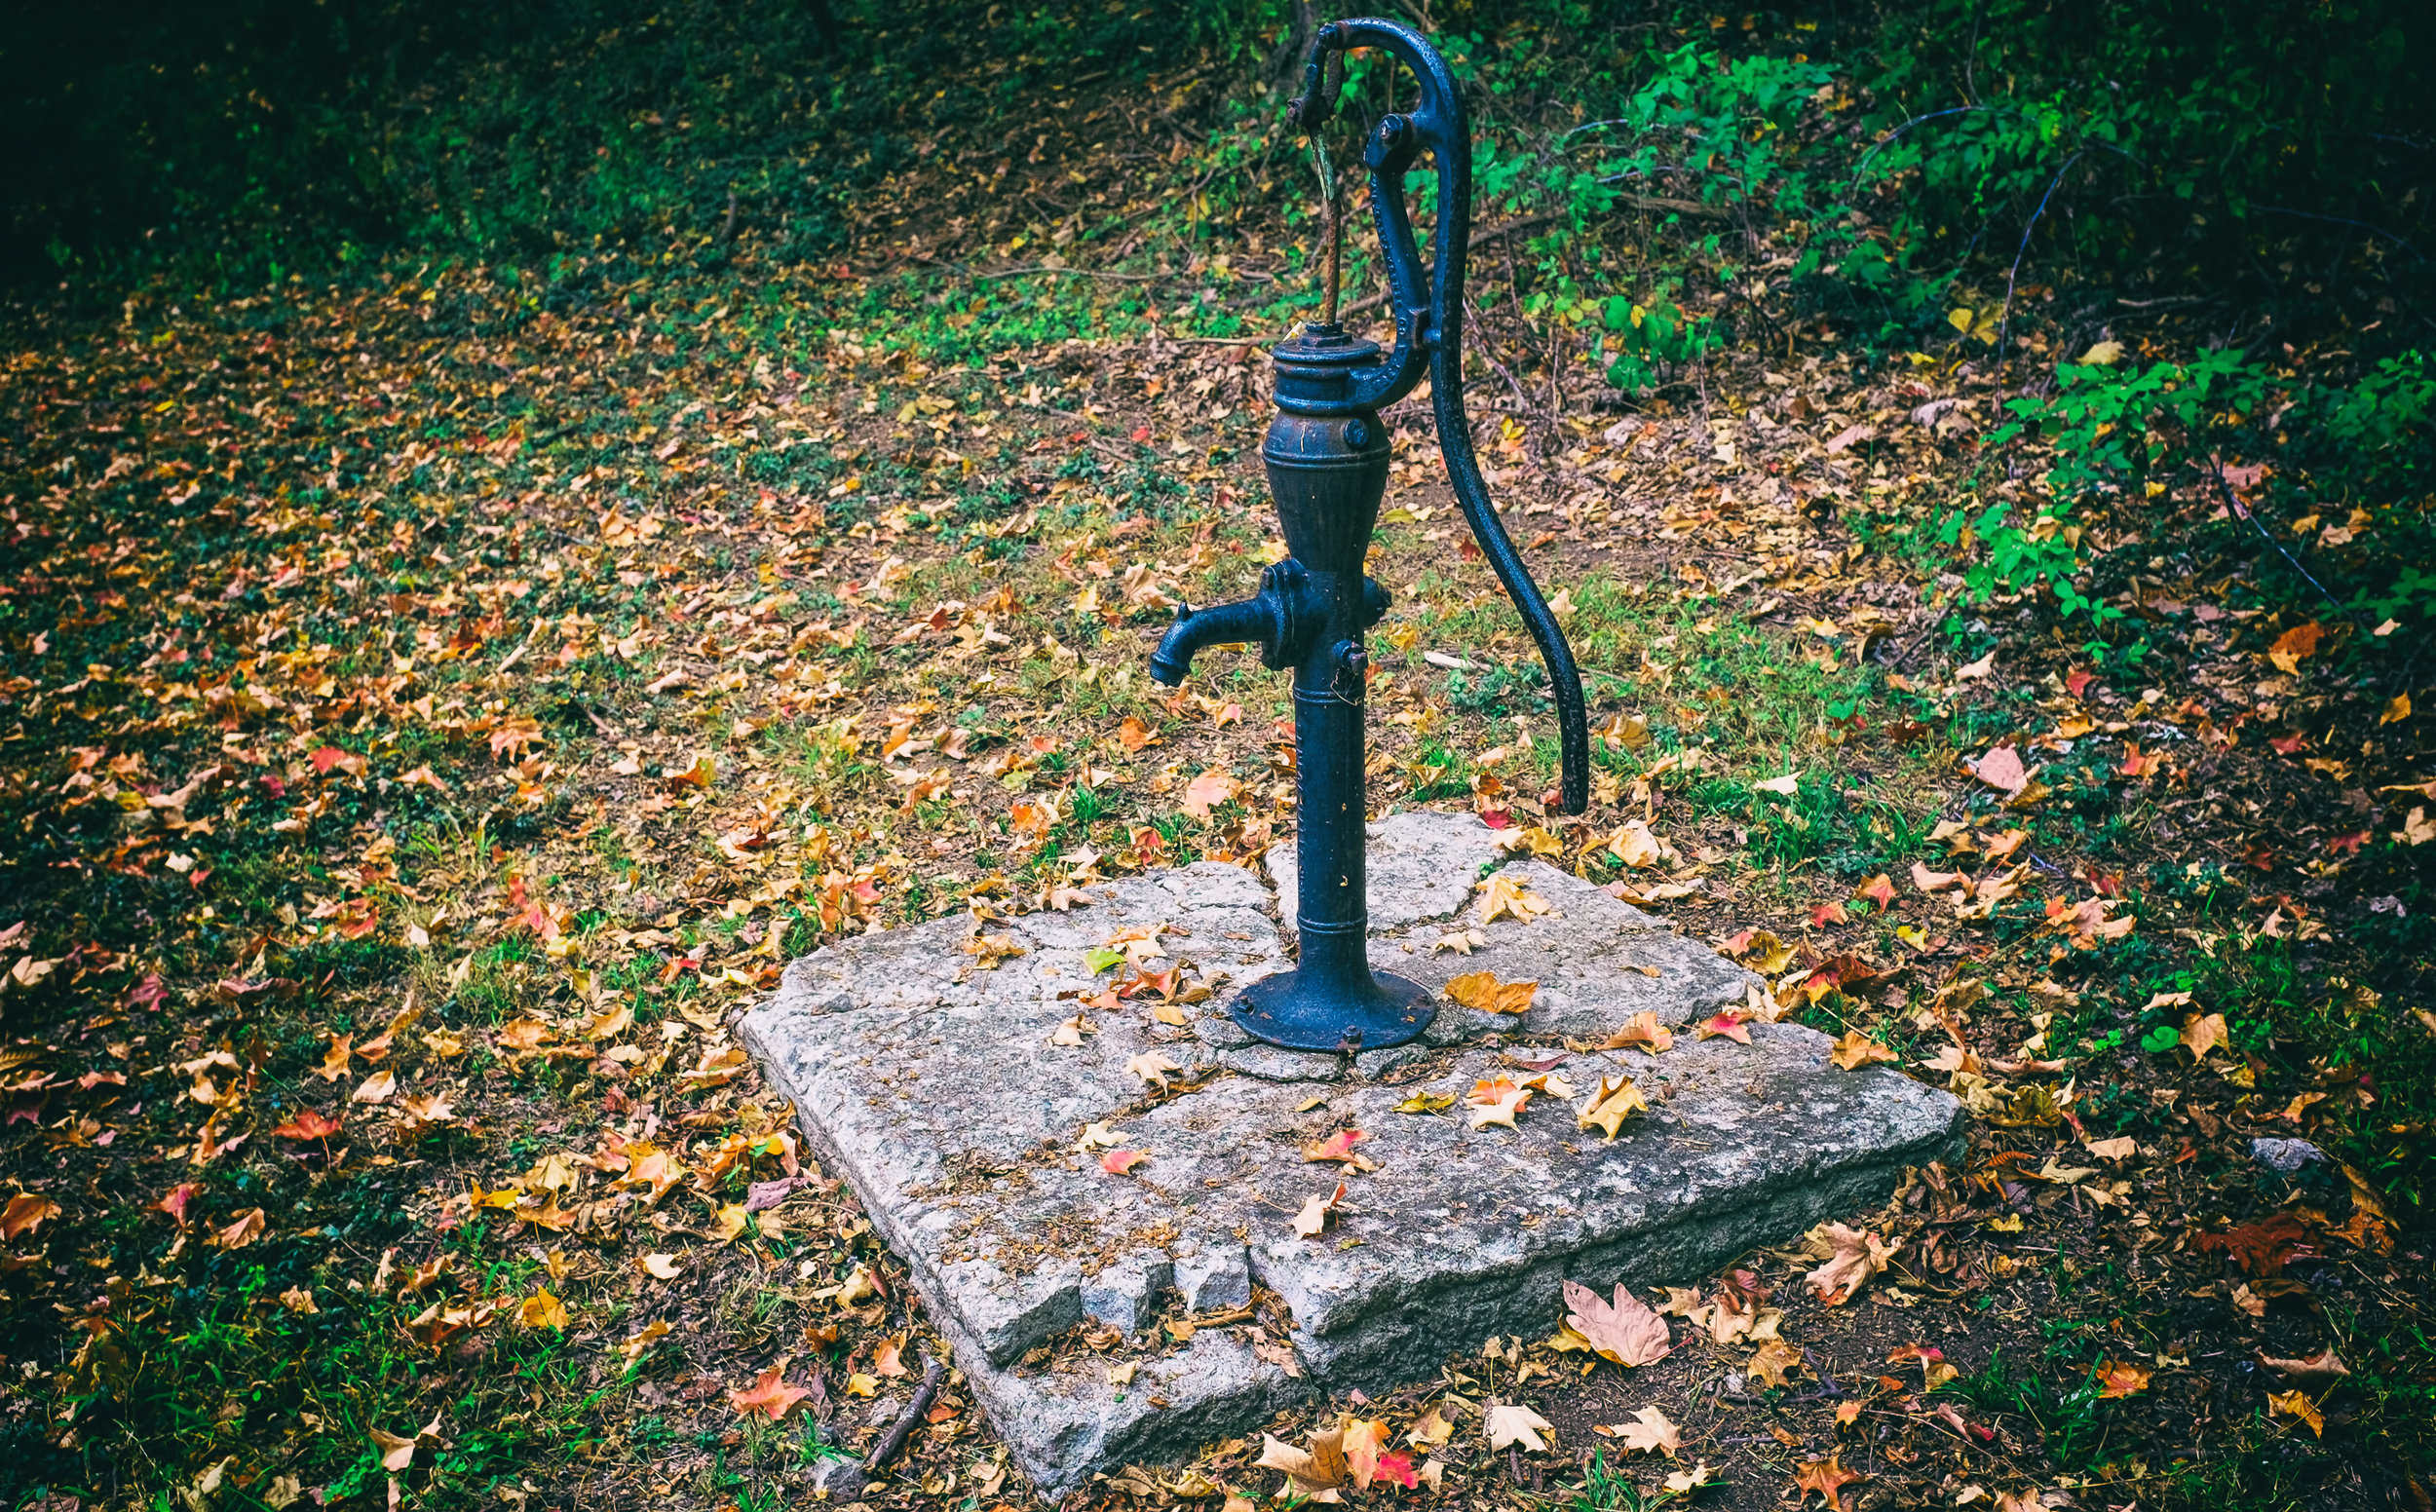 "An Old Well - Fujifilm X100T - I came across this old water pump while walking the grounds at Olana. The late season autumn leaves combined with the cracked concrete base made a fitting back-drop for this relic. Still, I could admire the beauty in the simplicity of its design. One wonders when it last drew any water? See the poem ""Empty Truth"" in the Poetry Section."